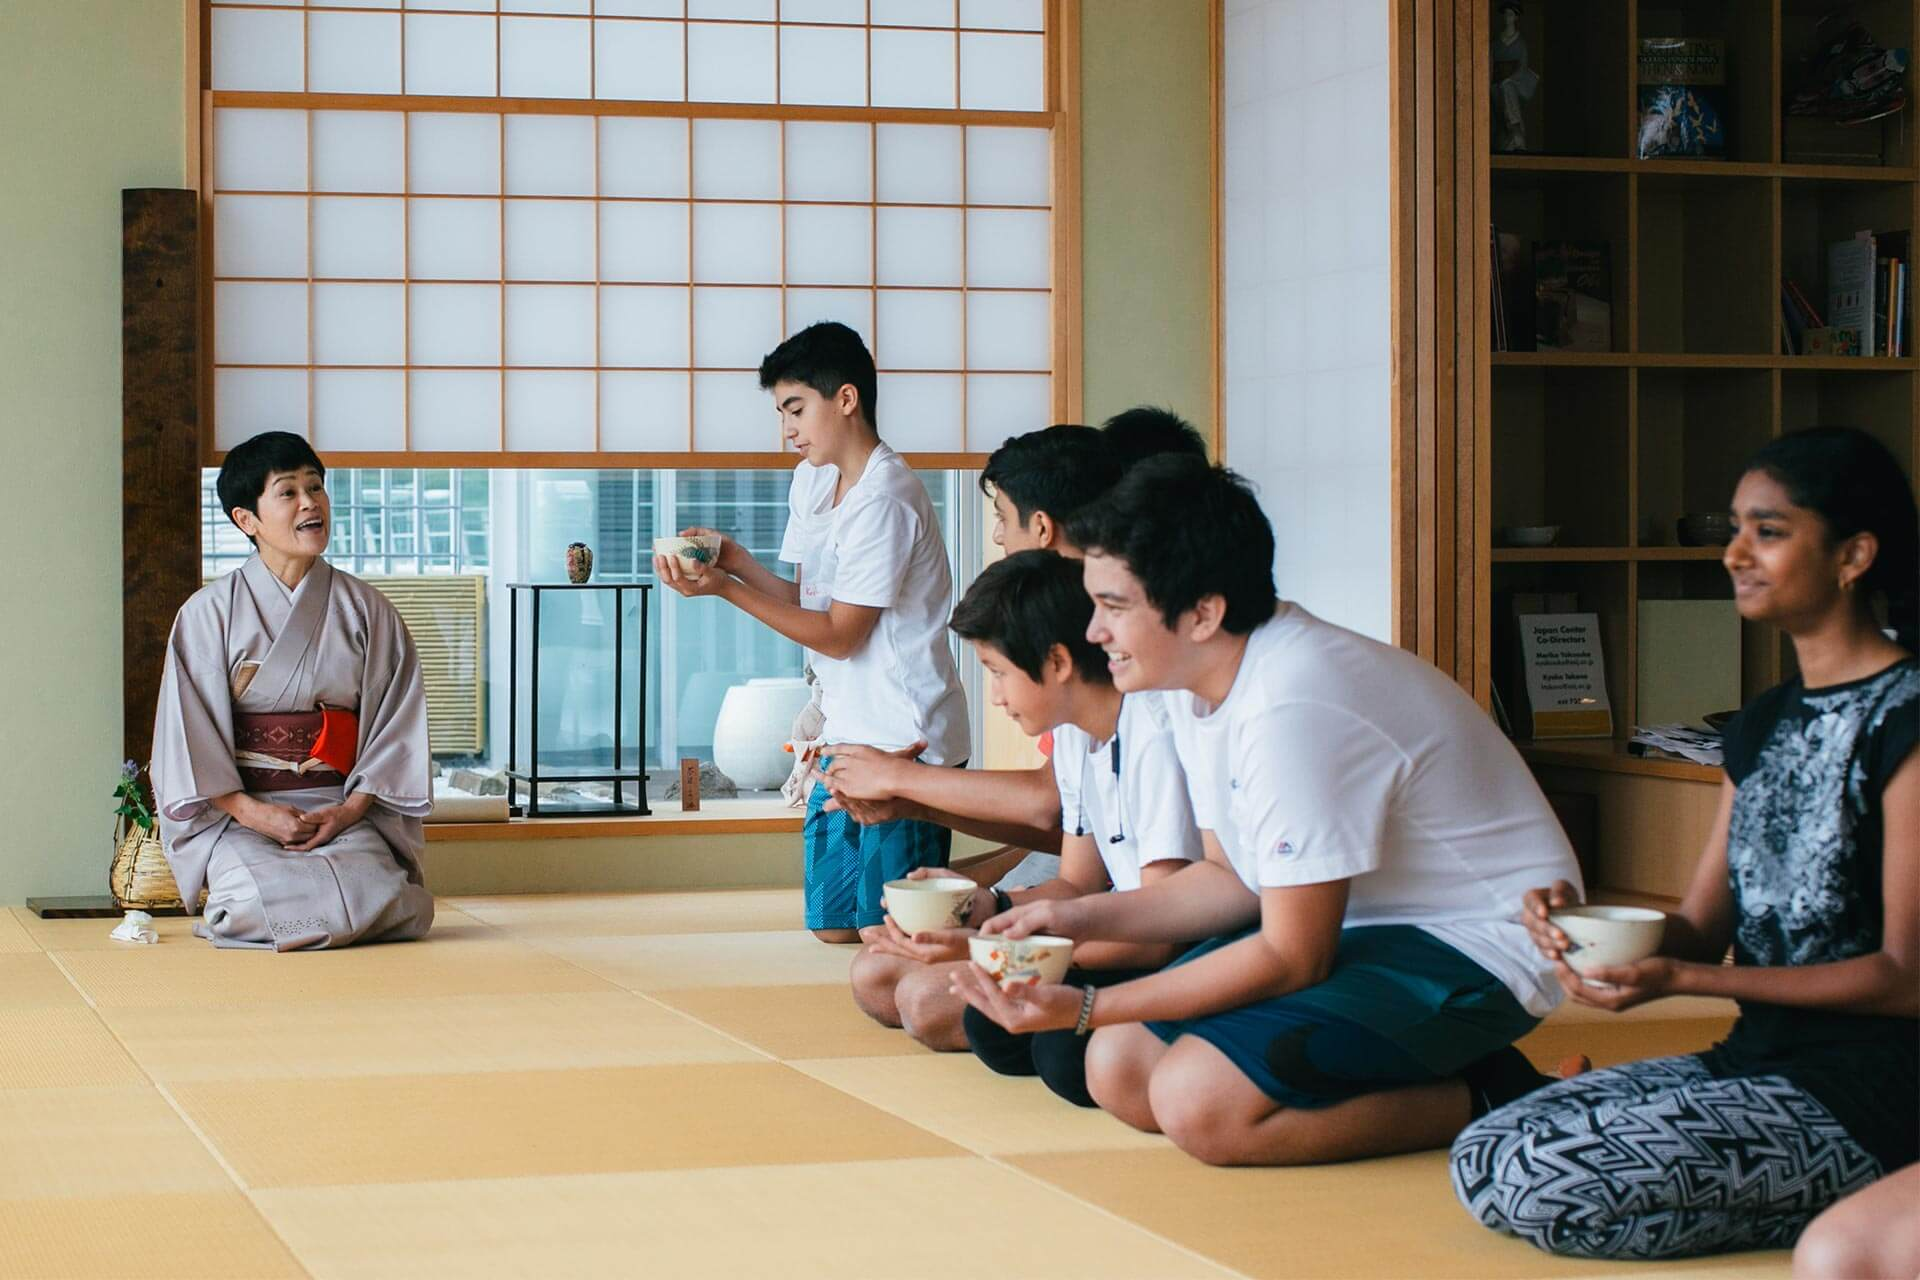 ASIJ Students Learn Tea Ceremony in the Japan Center